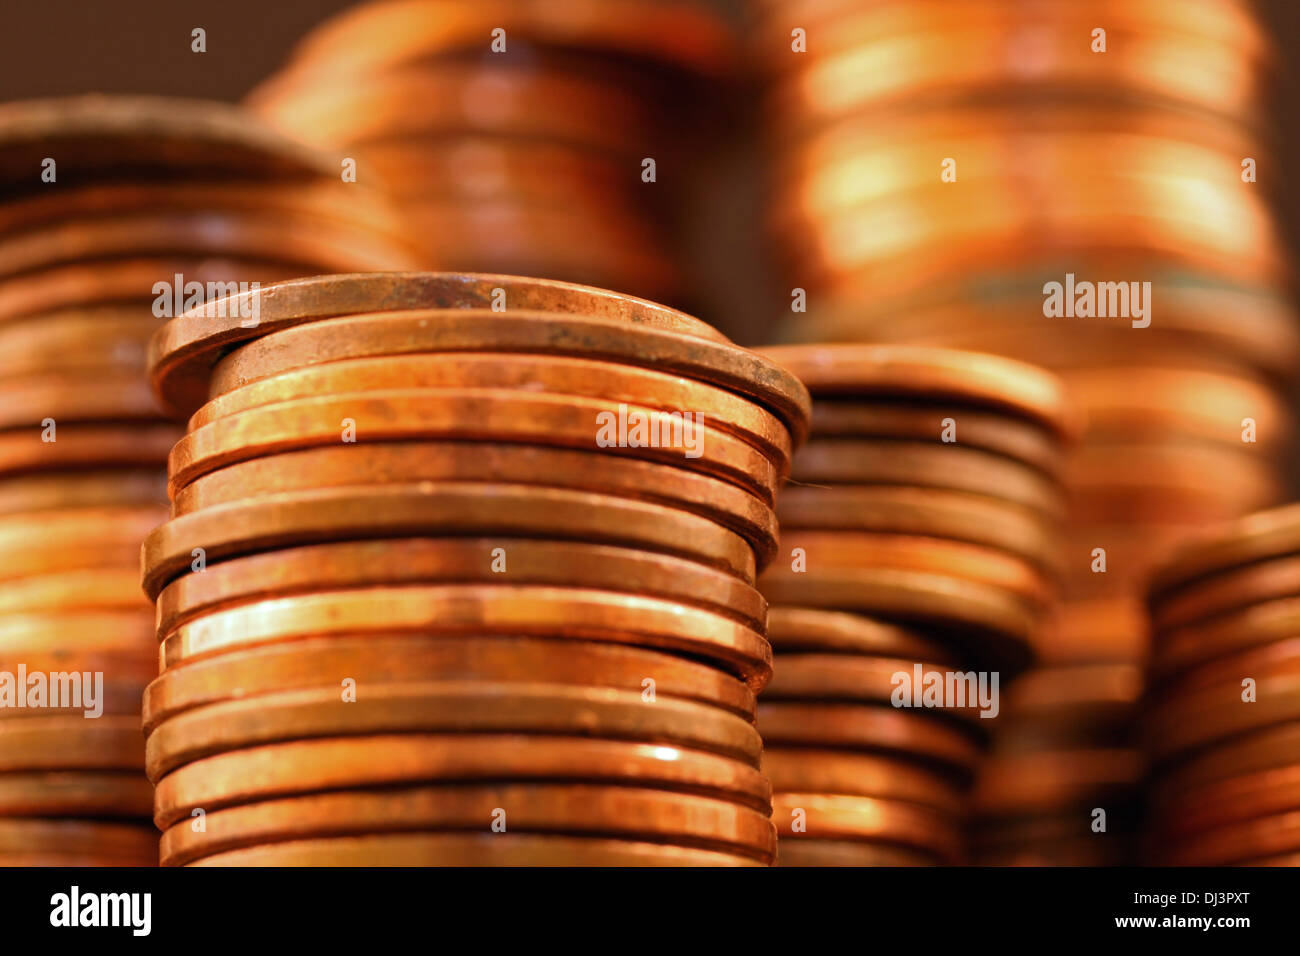 American pennies close up - Stock Image